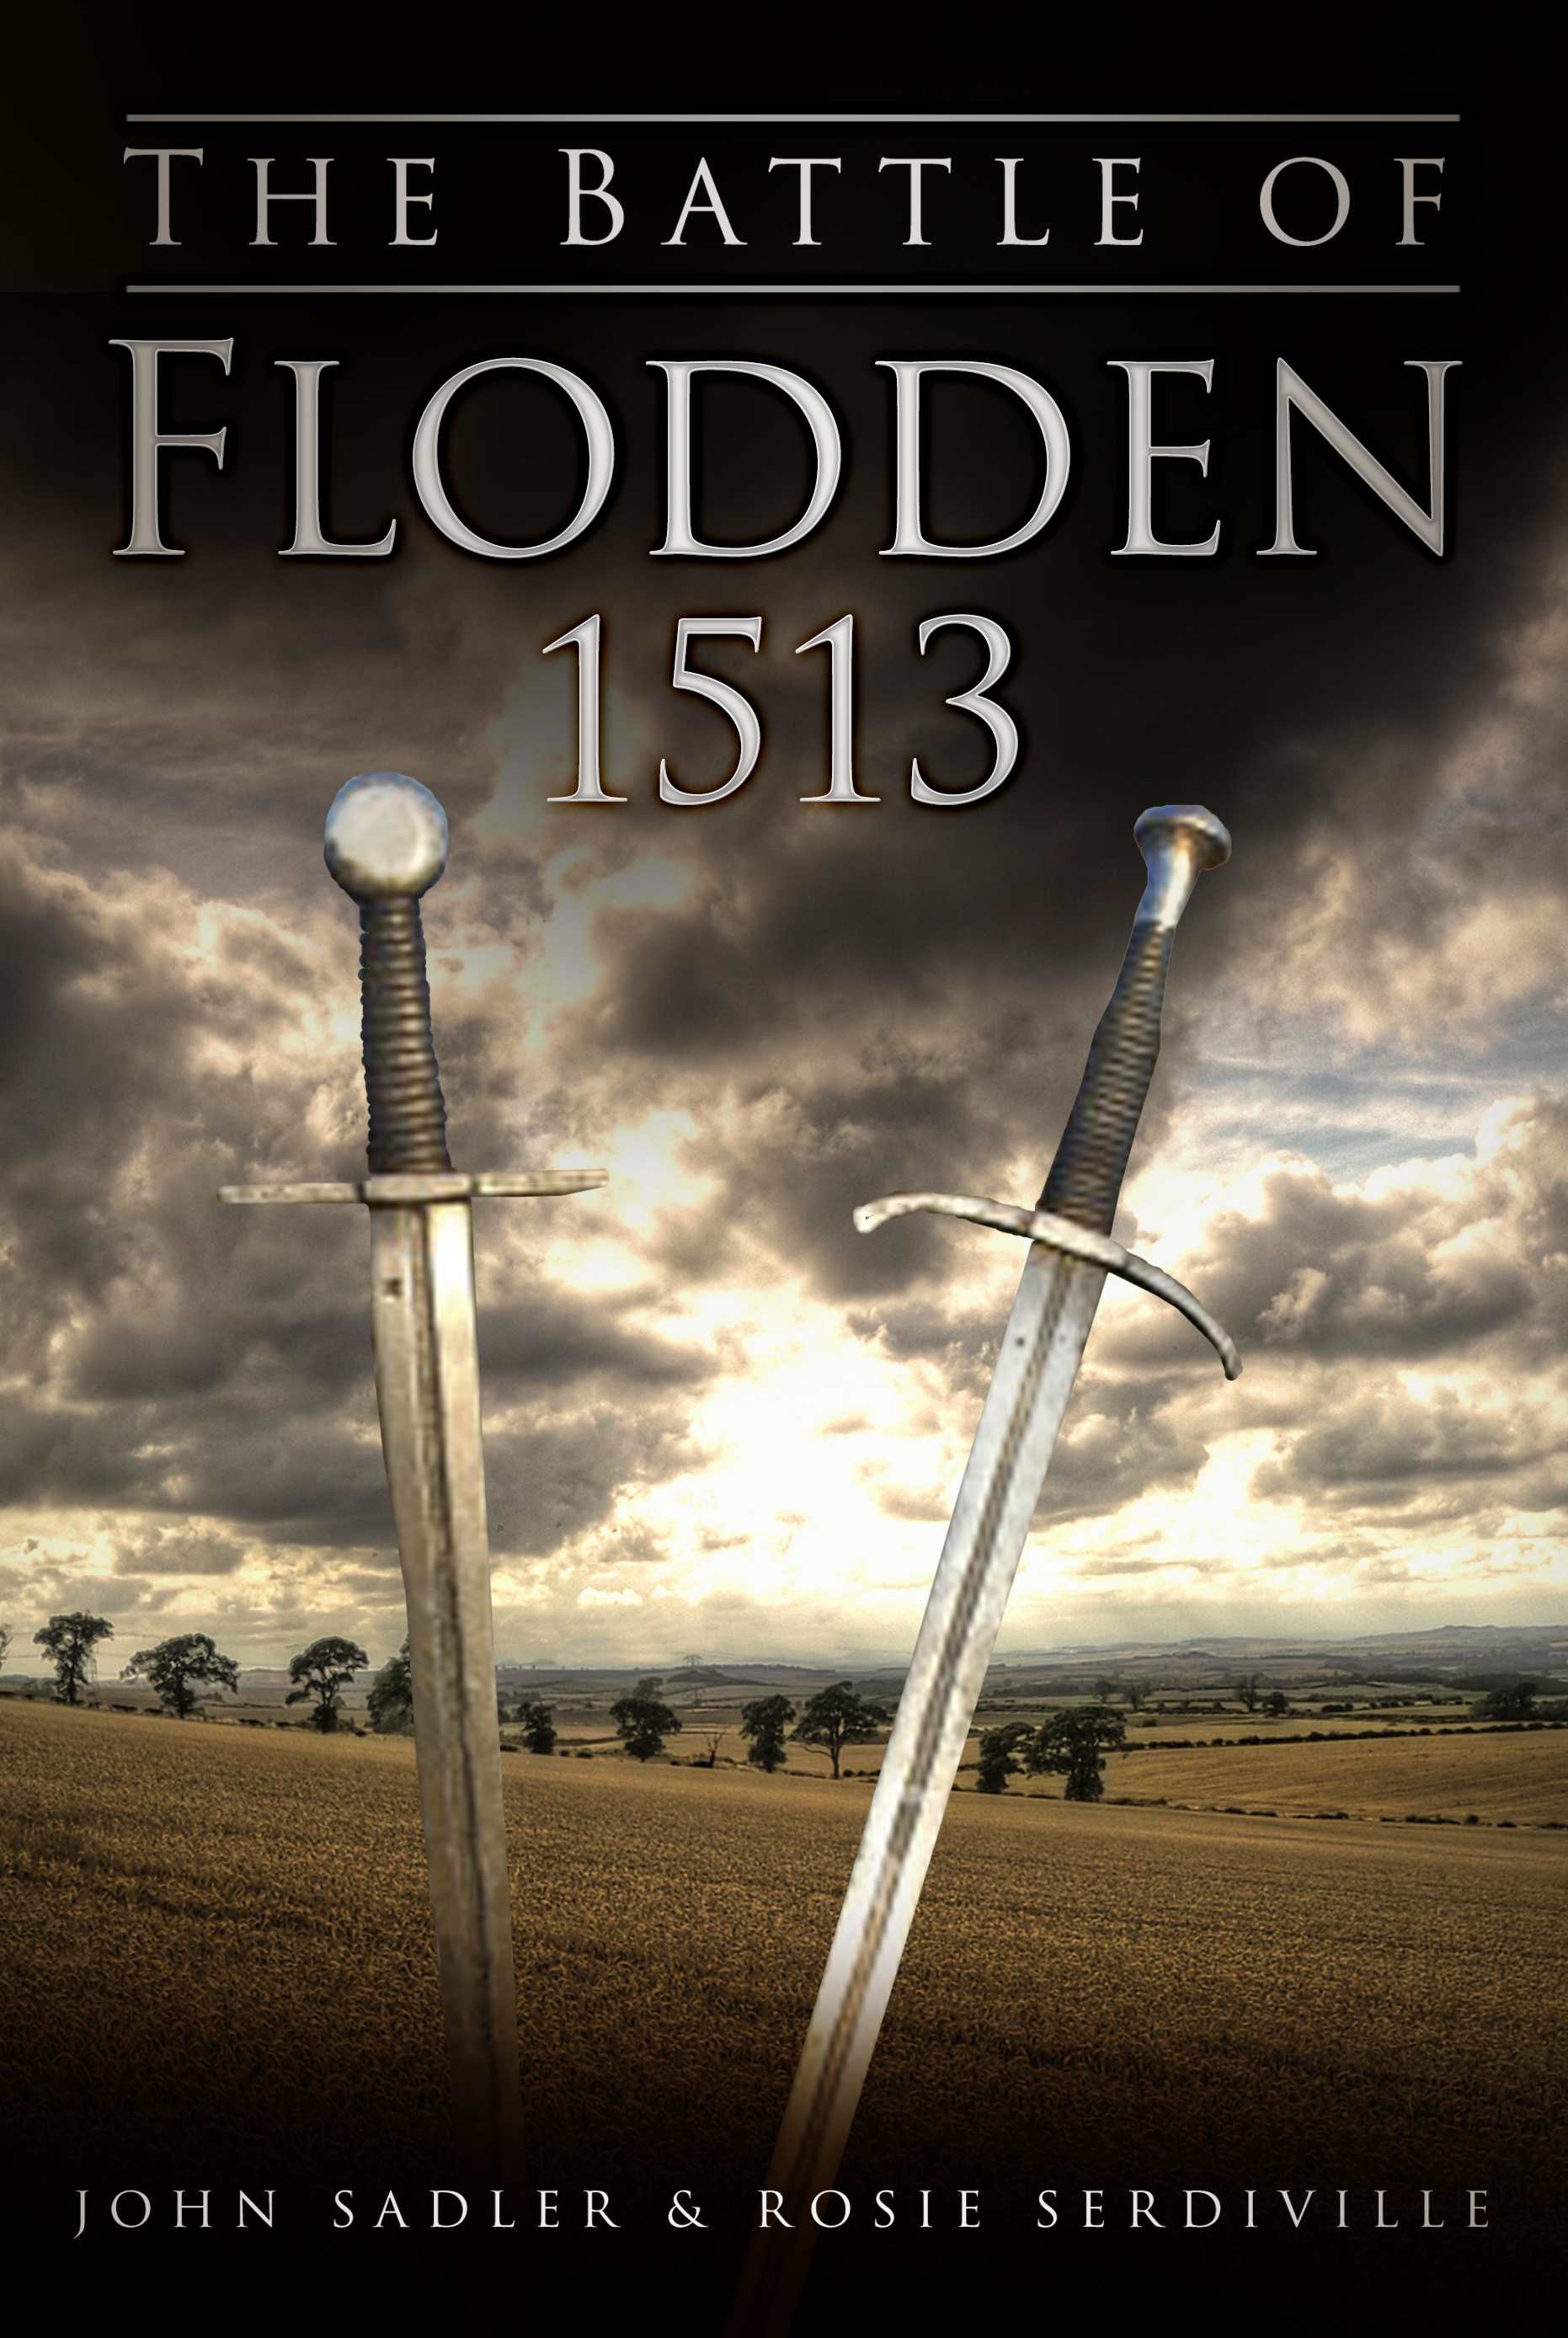 The Battle of Flodden 1513